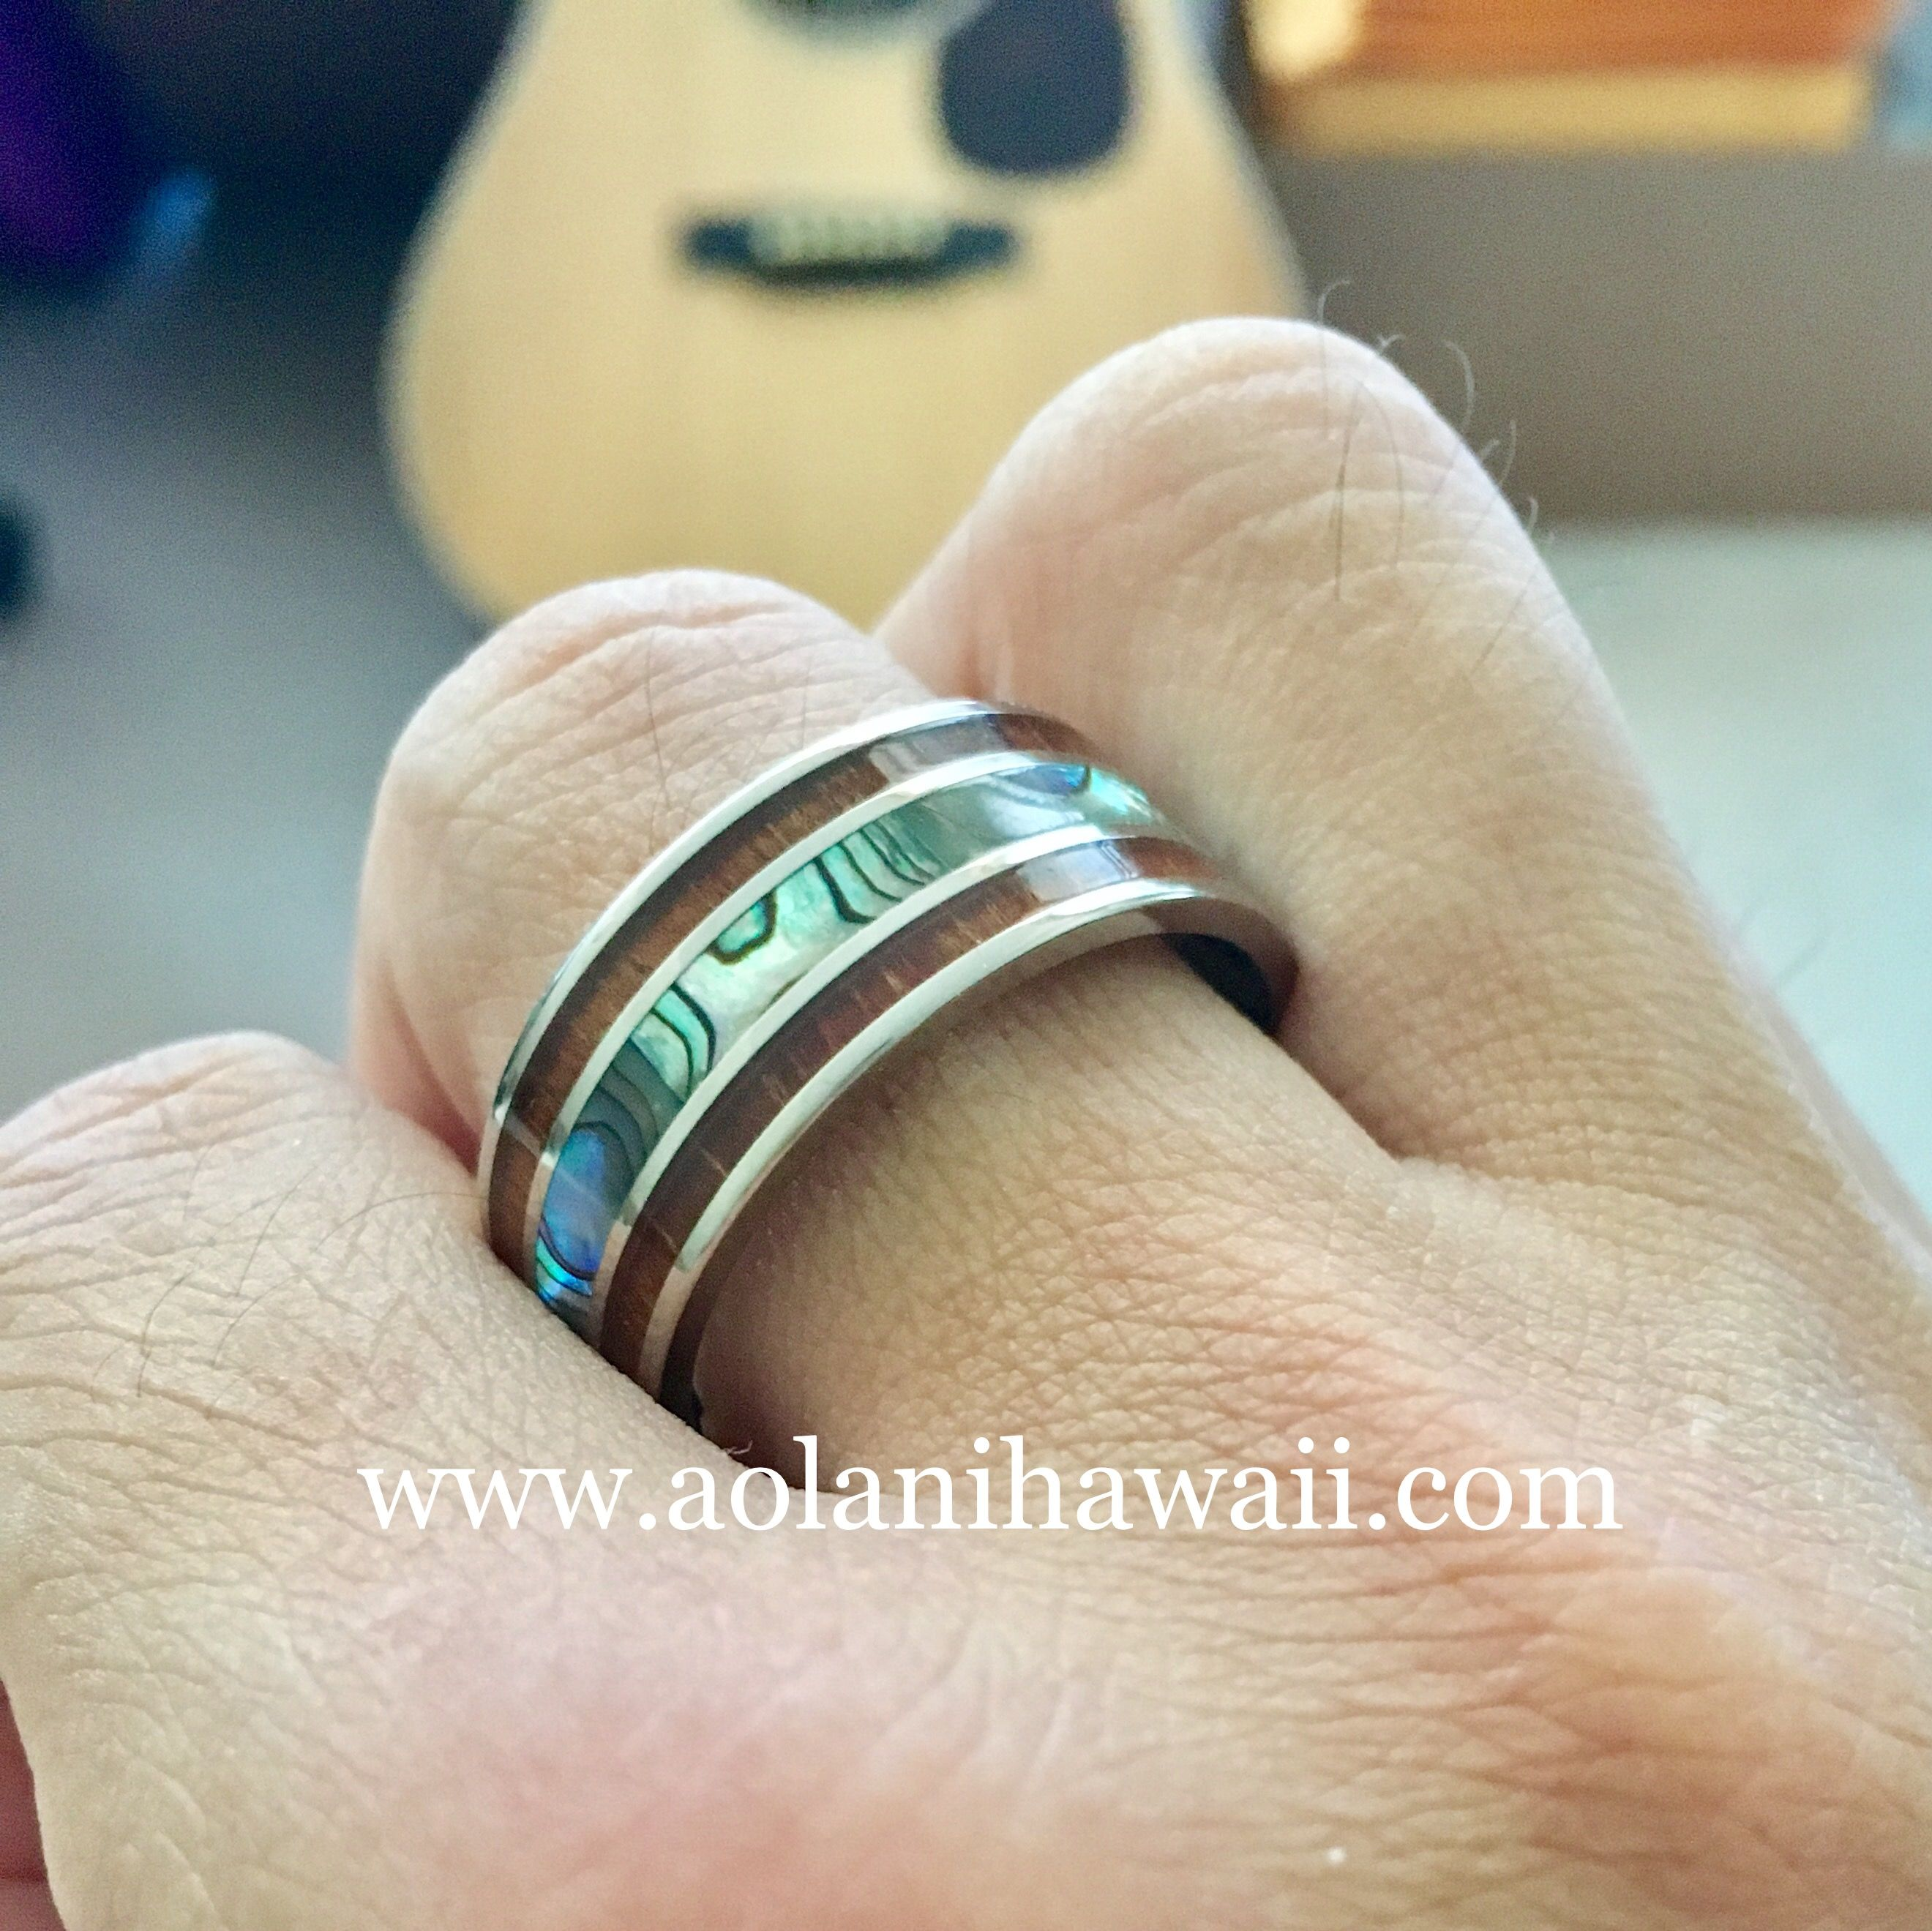 sr details devotion shell kung aeravida endearing this stone handcrafted turquoise shaped thailand silver features rings heart wedding products a style abalone true vintage ring sterling the from aba artisan or